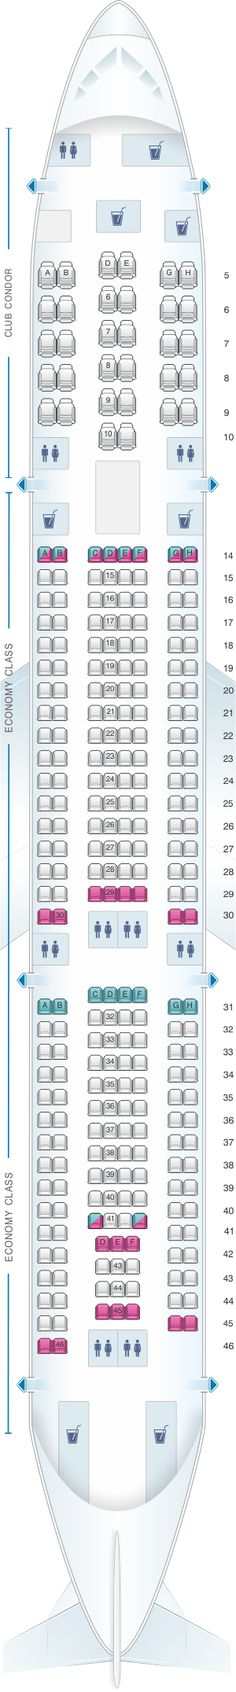 Seat Map Aerolineas Argentinas Airbus A340 300